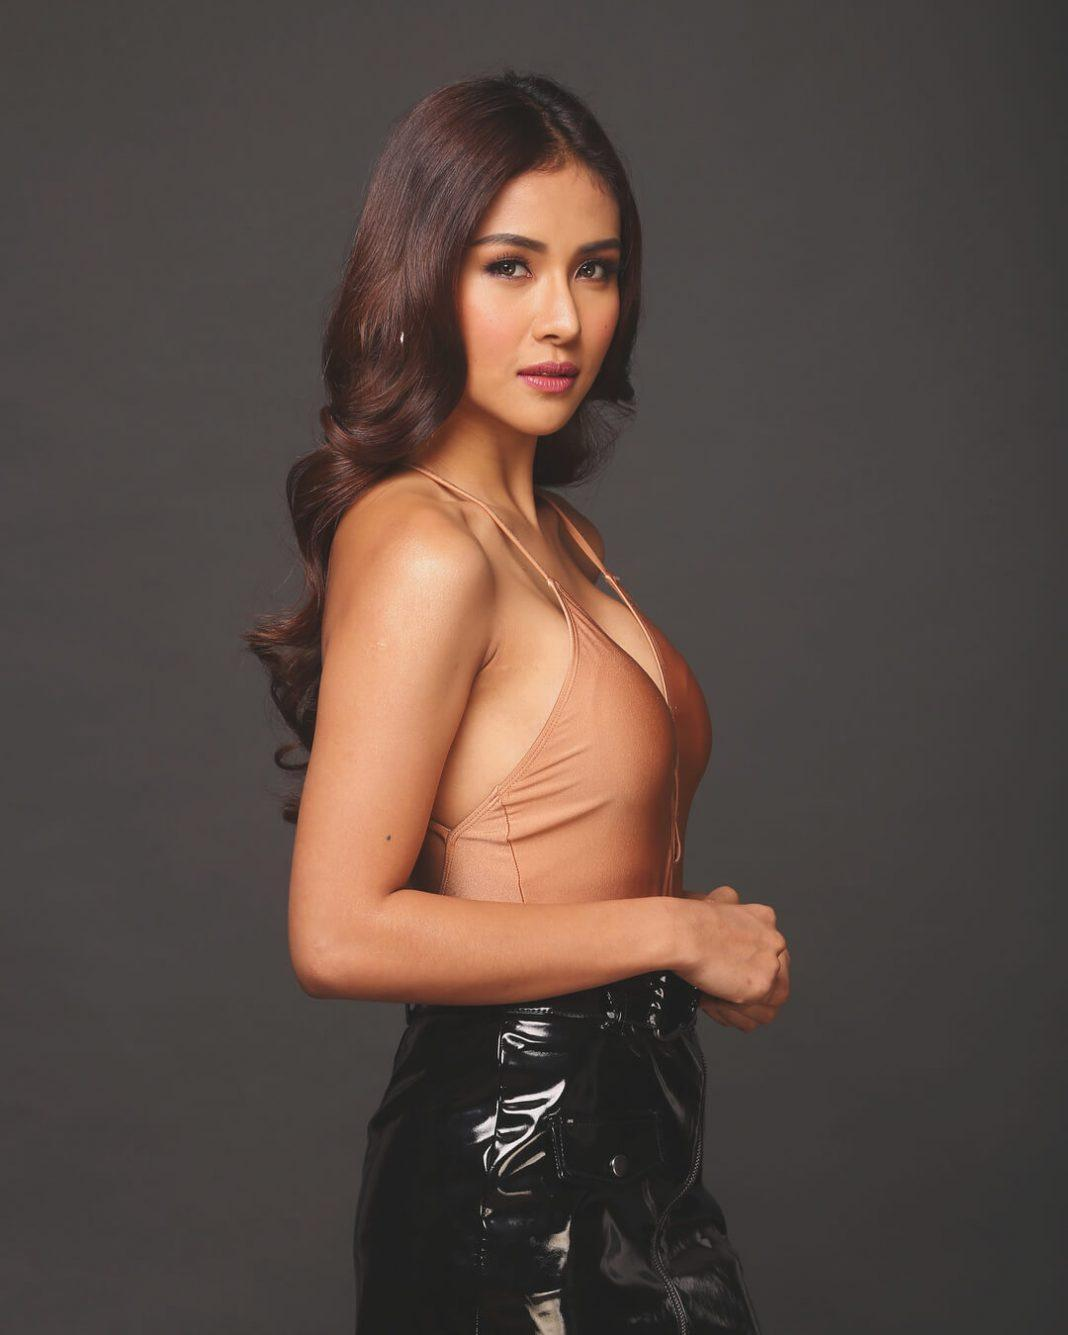 Sanya Lopez awesome pics (1)